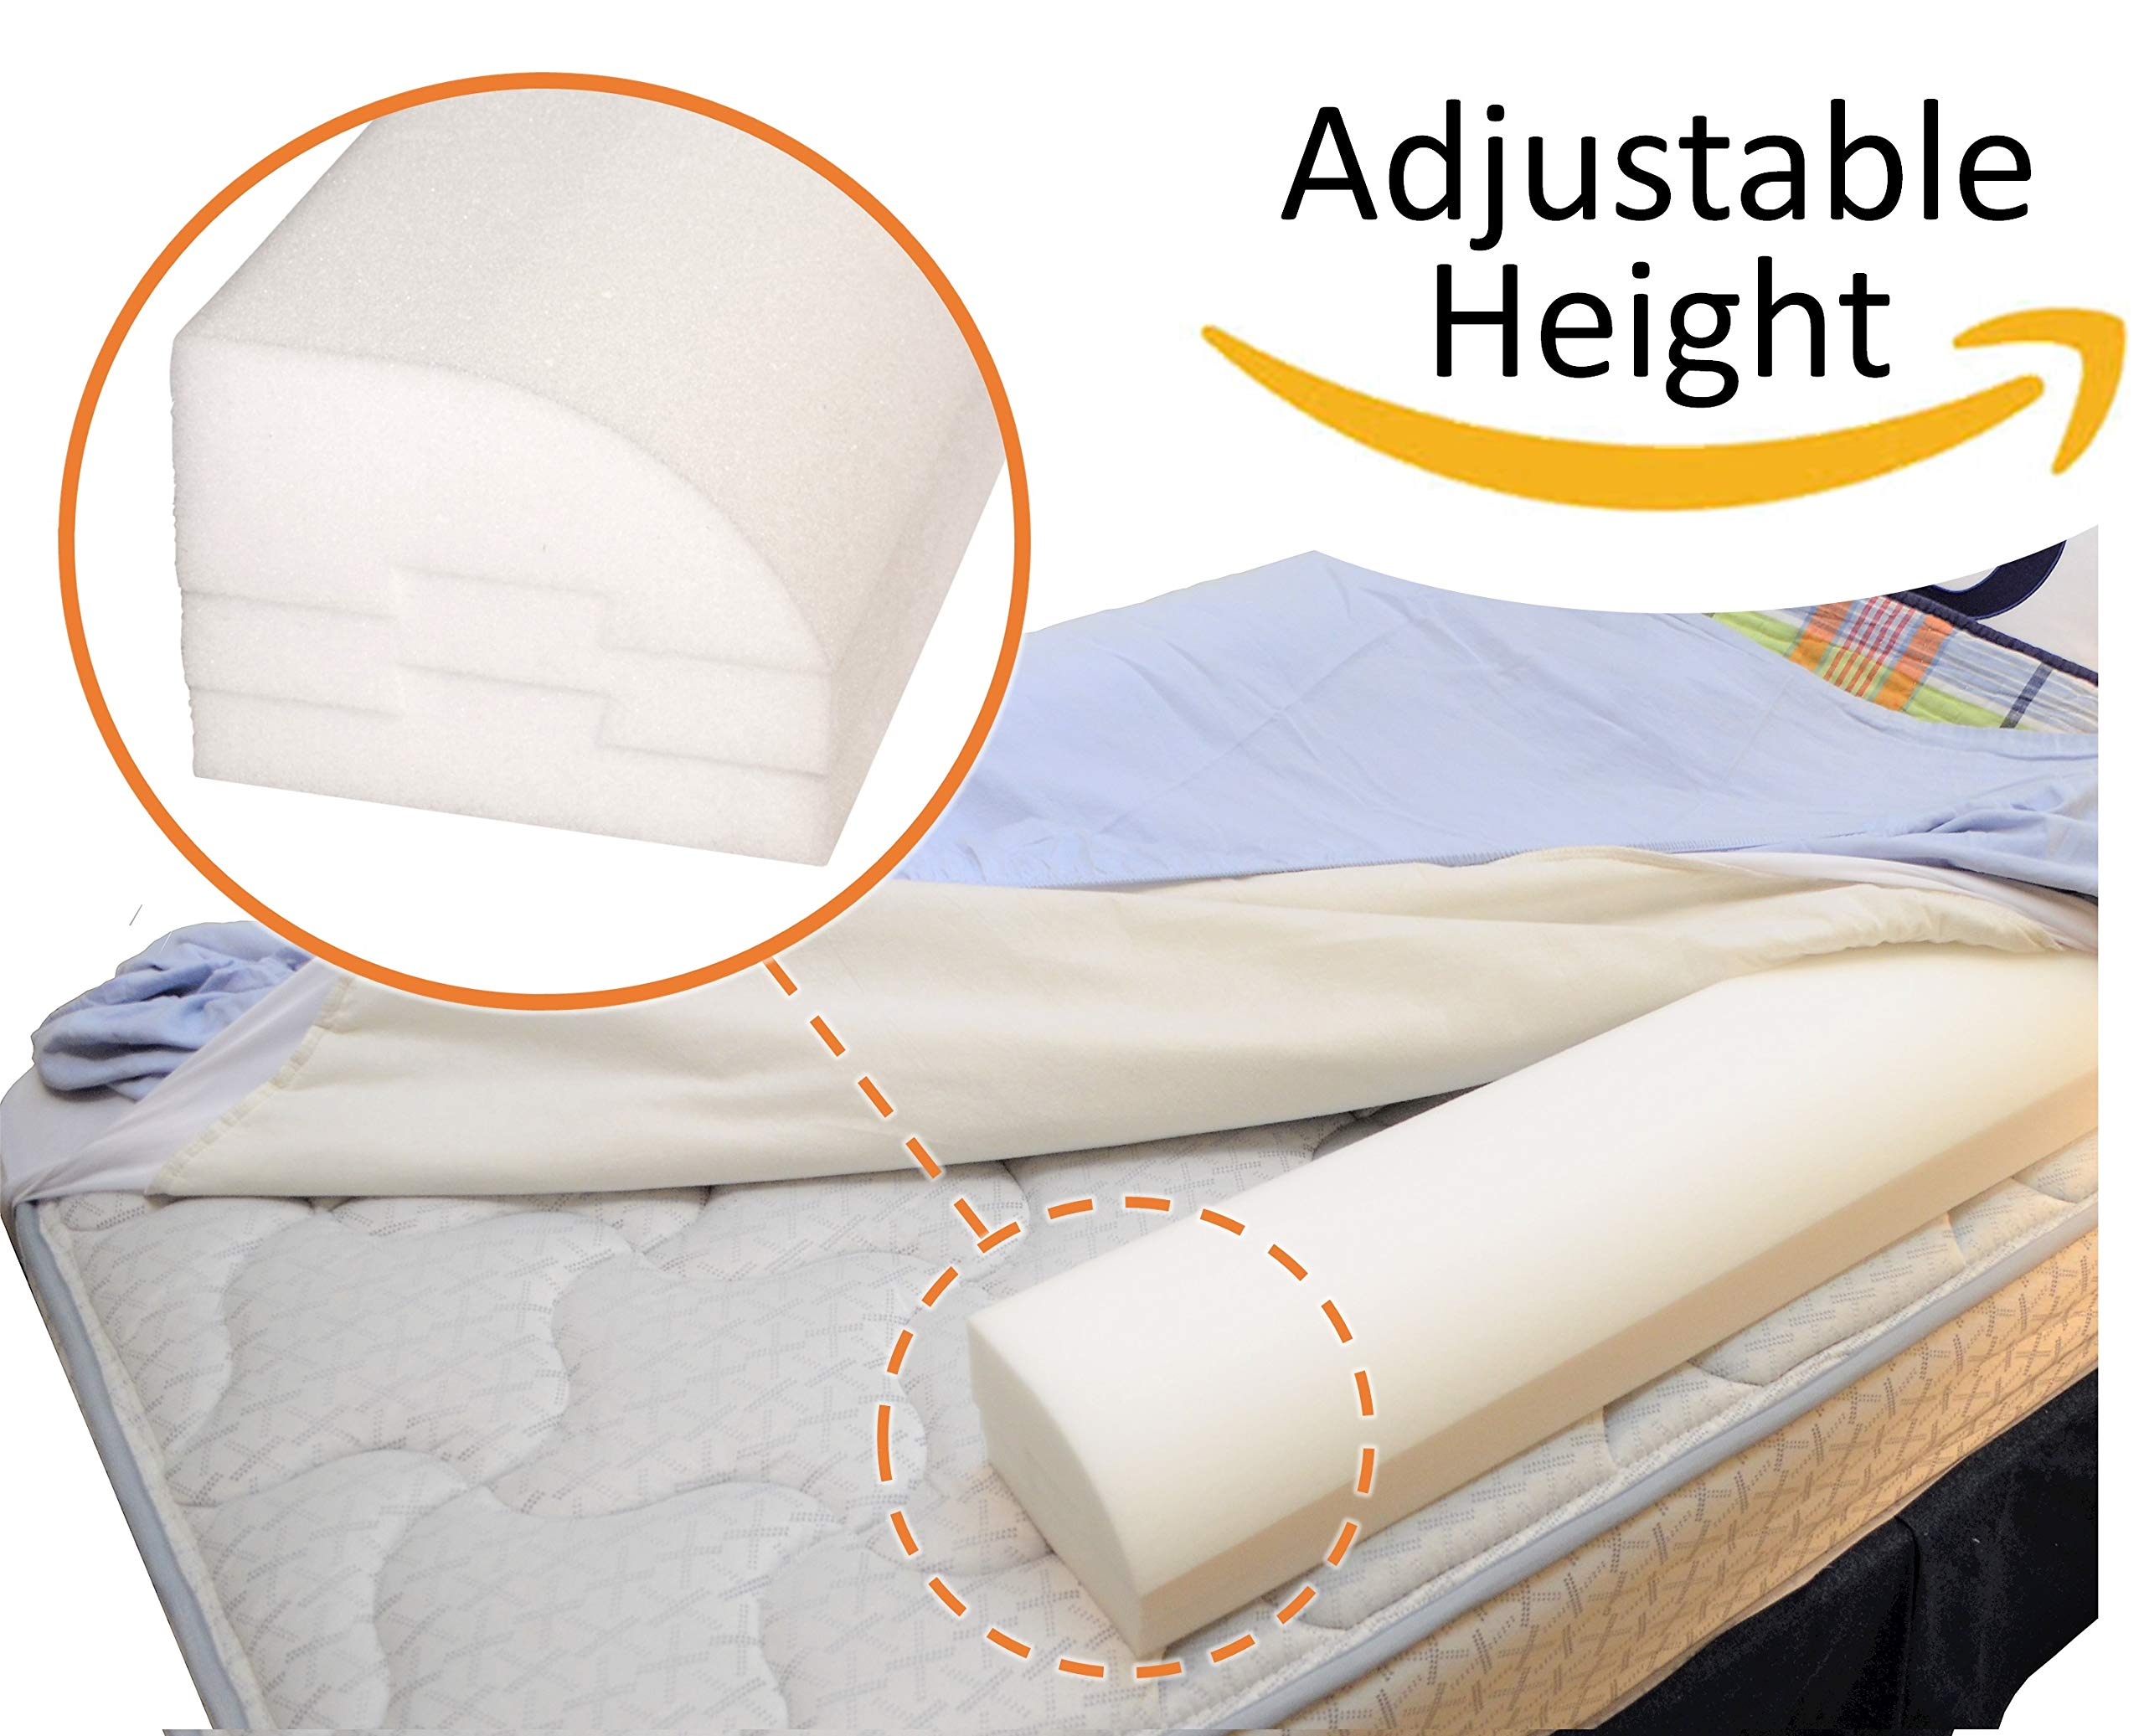 Adjustable Height Bed Rail for Toddlers and Kids; Non-slip, Premium Foam; Washable; Made in the USA